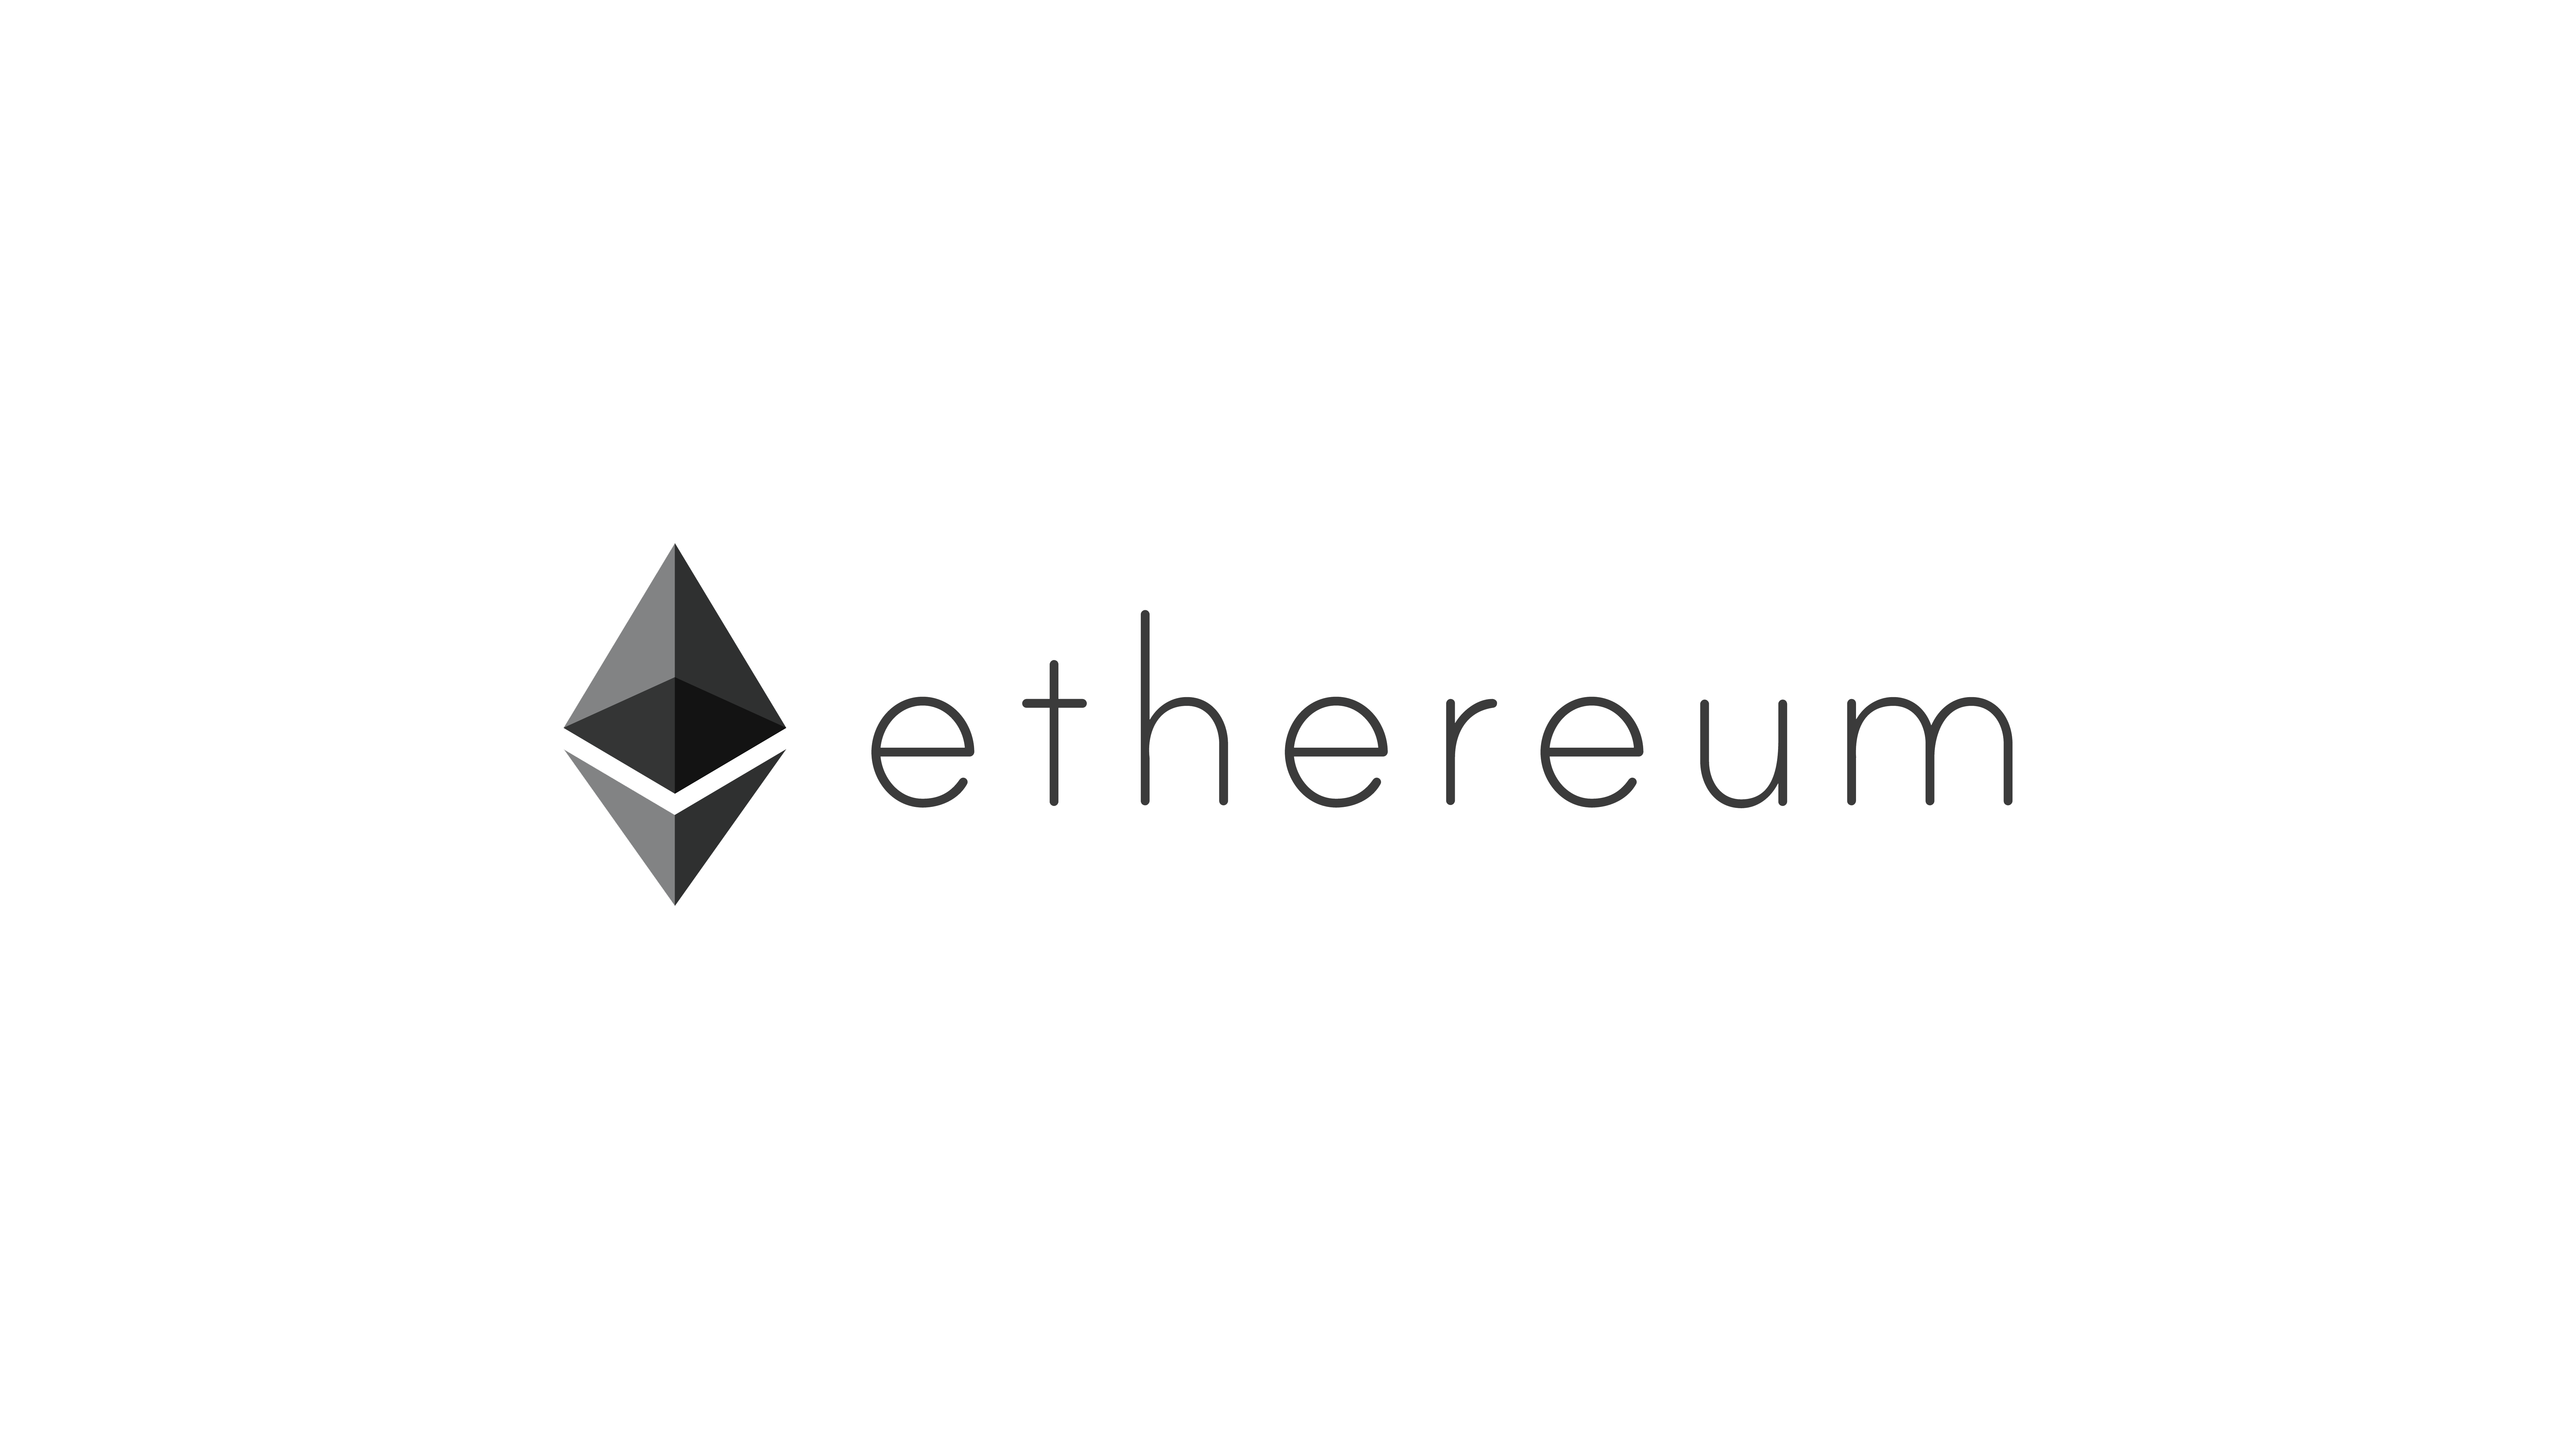 Ethereum Foundation Retina Desktop Background and Wallpaper 8000x4500